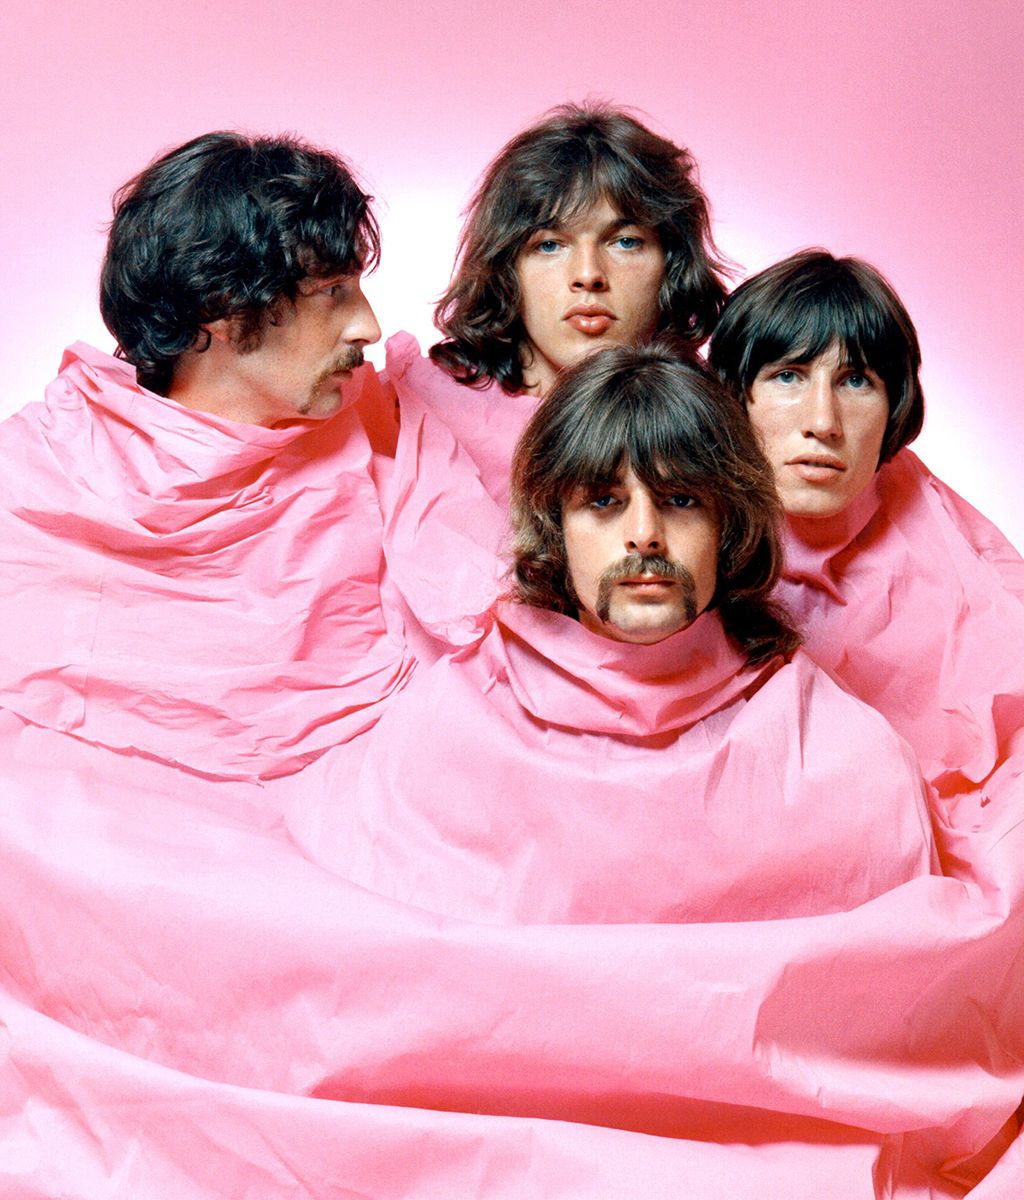 Image result for pink pink floyd cow